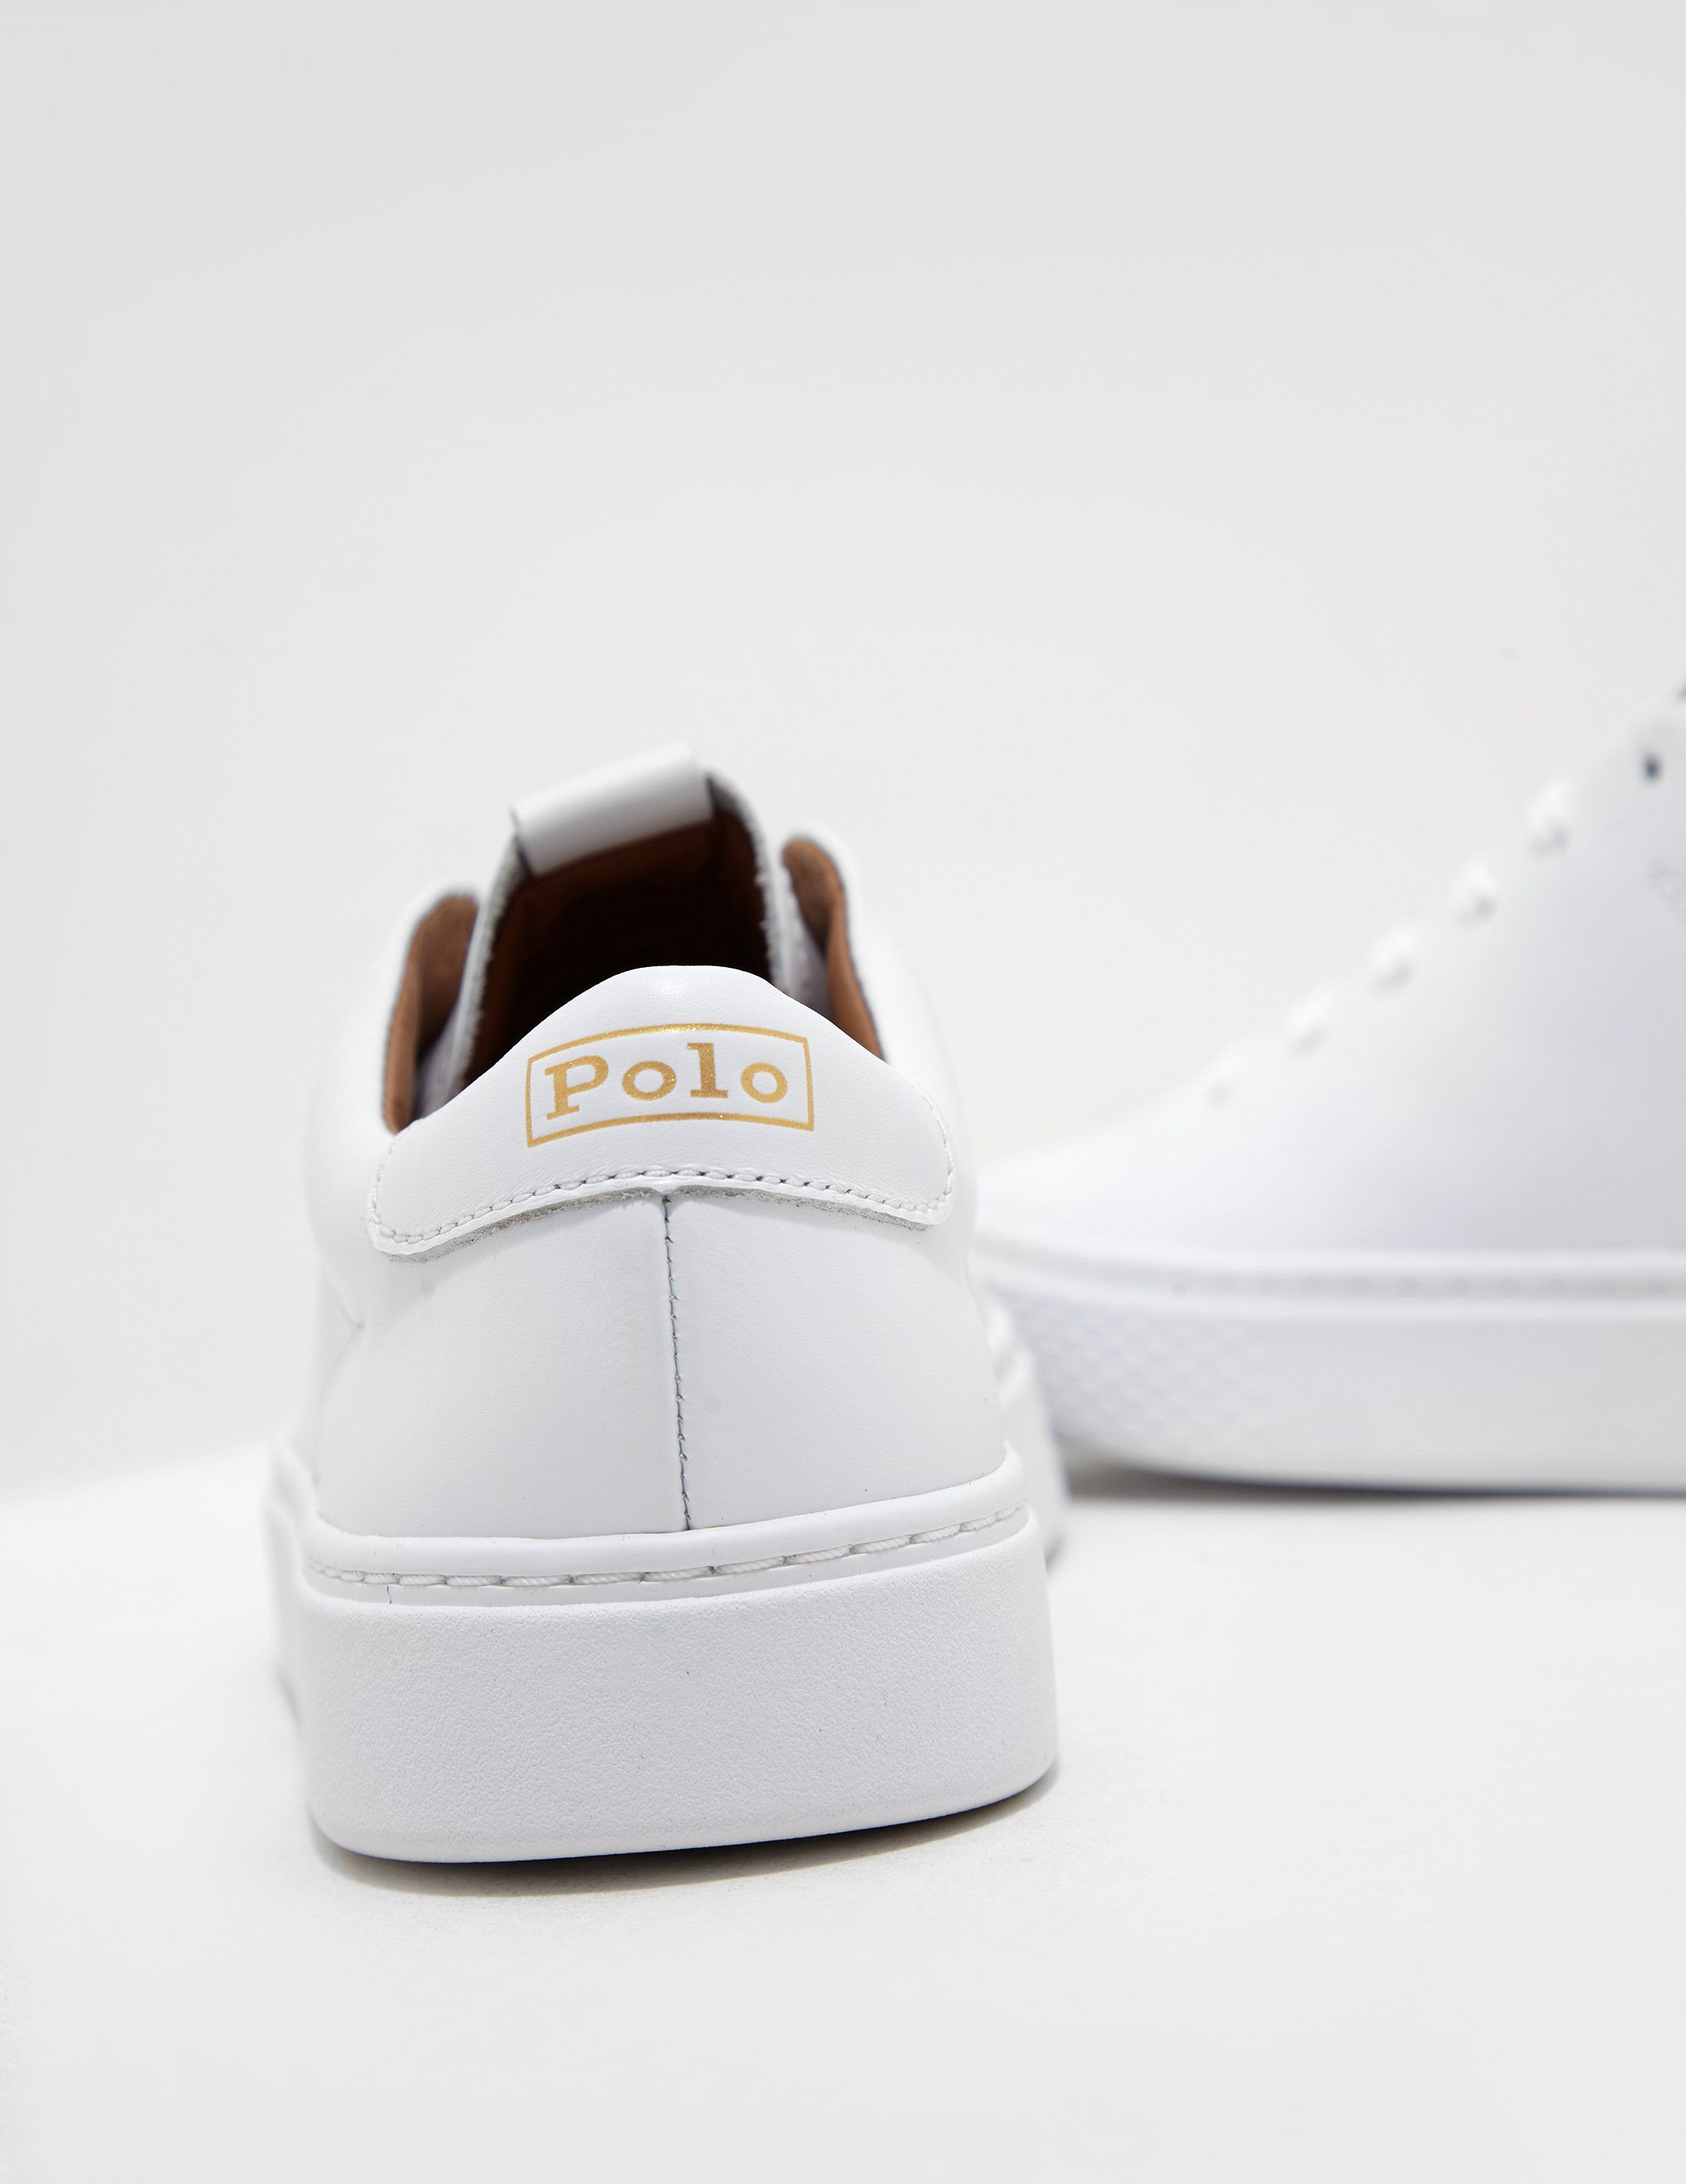 Polo Ralph Lauren 125 Low Trainers